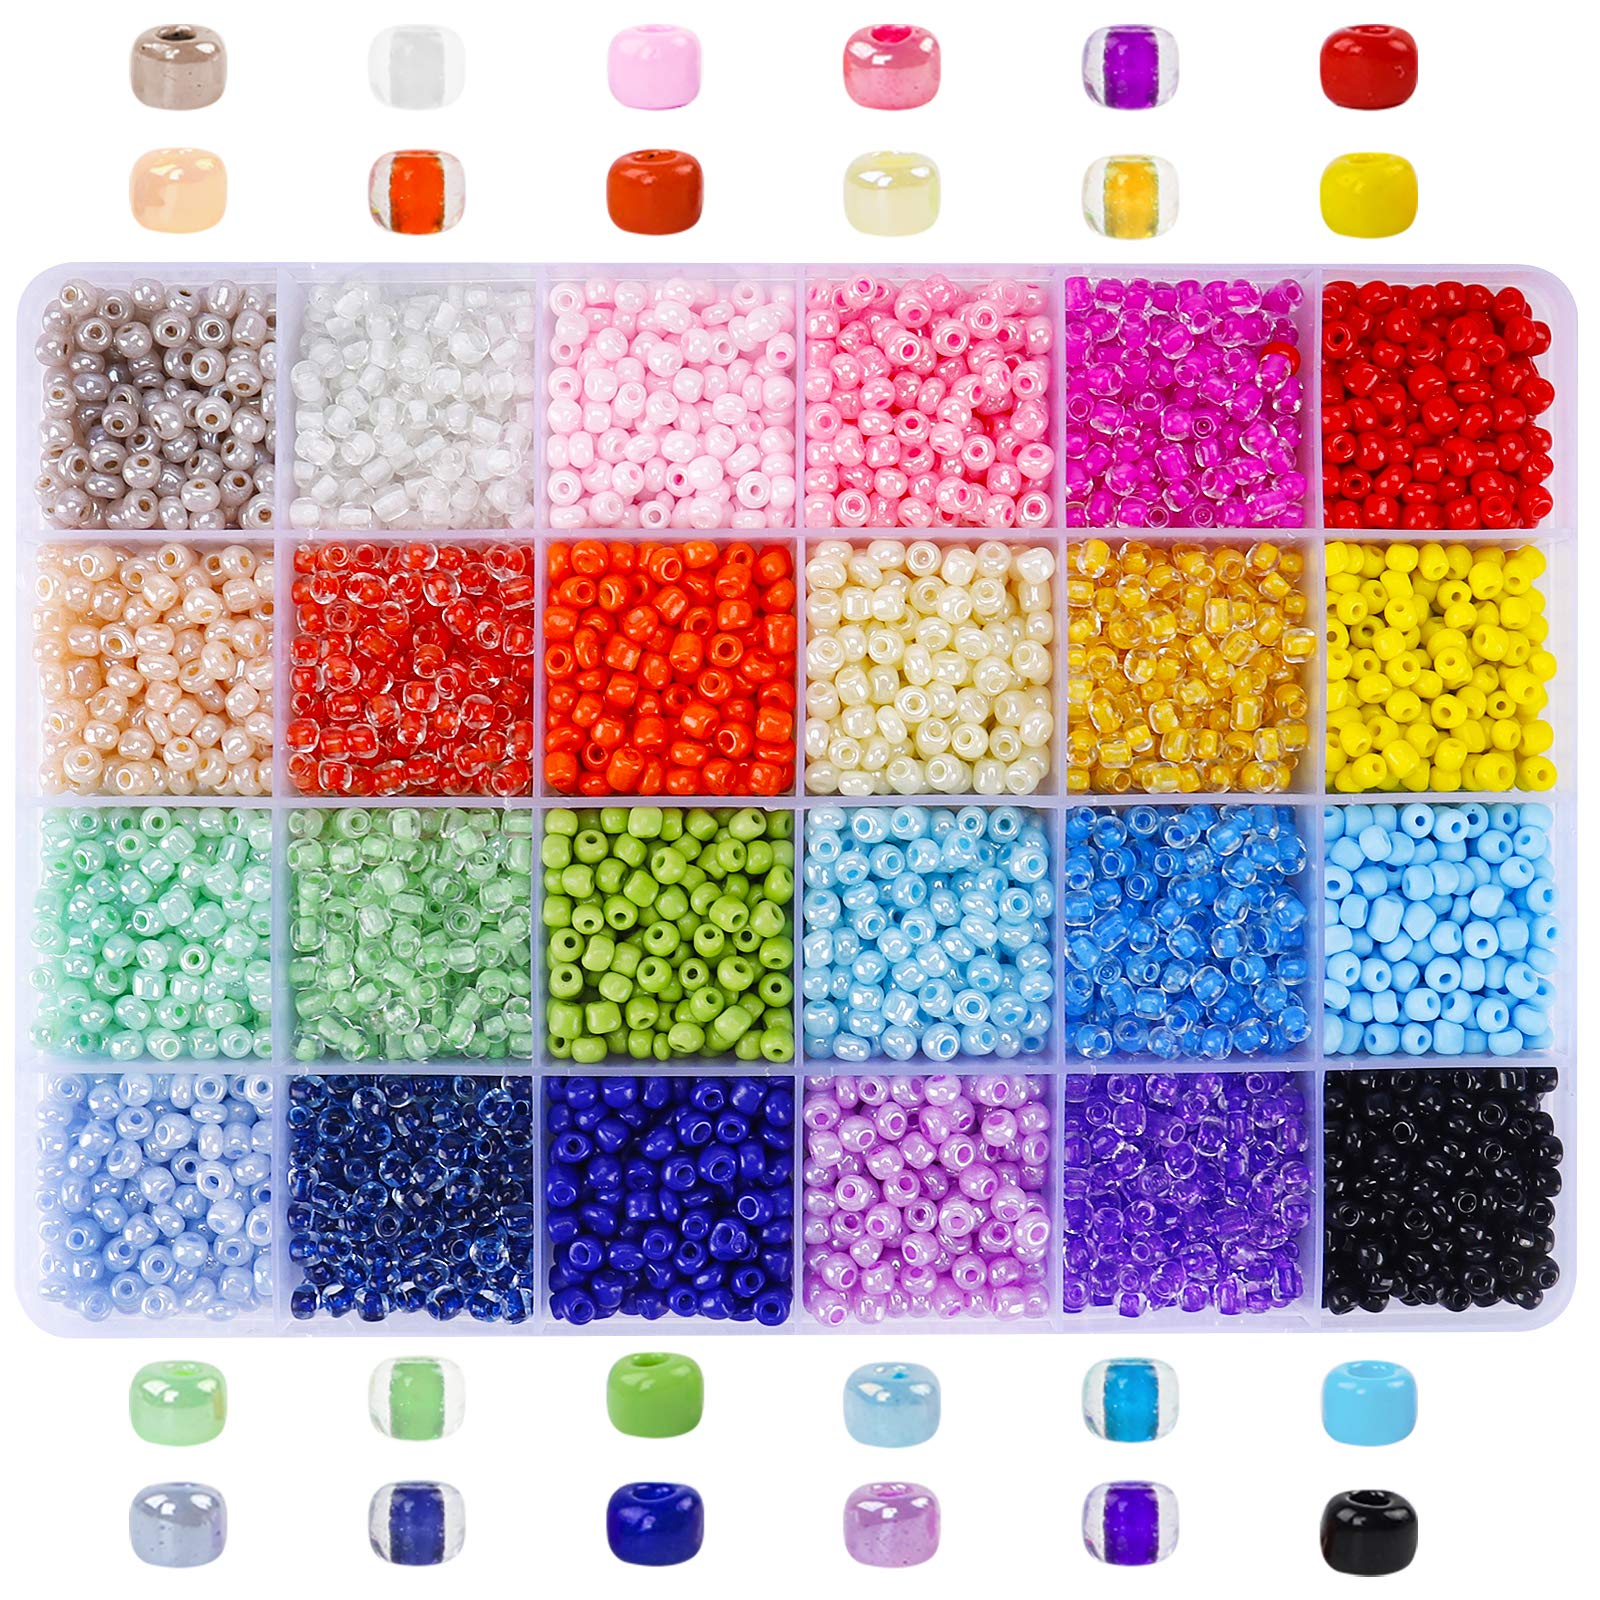 15600pcs 3mm Glass Seed Beads 24 Colors Loose Beads Kit Spacer Beads Bracelet Beads with 24-Grid Storage Box for Jewelry Making